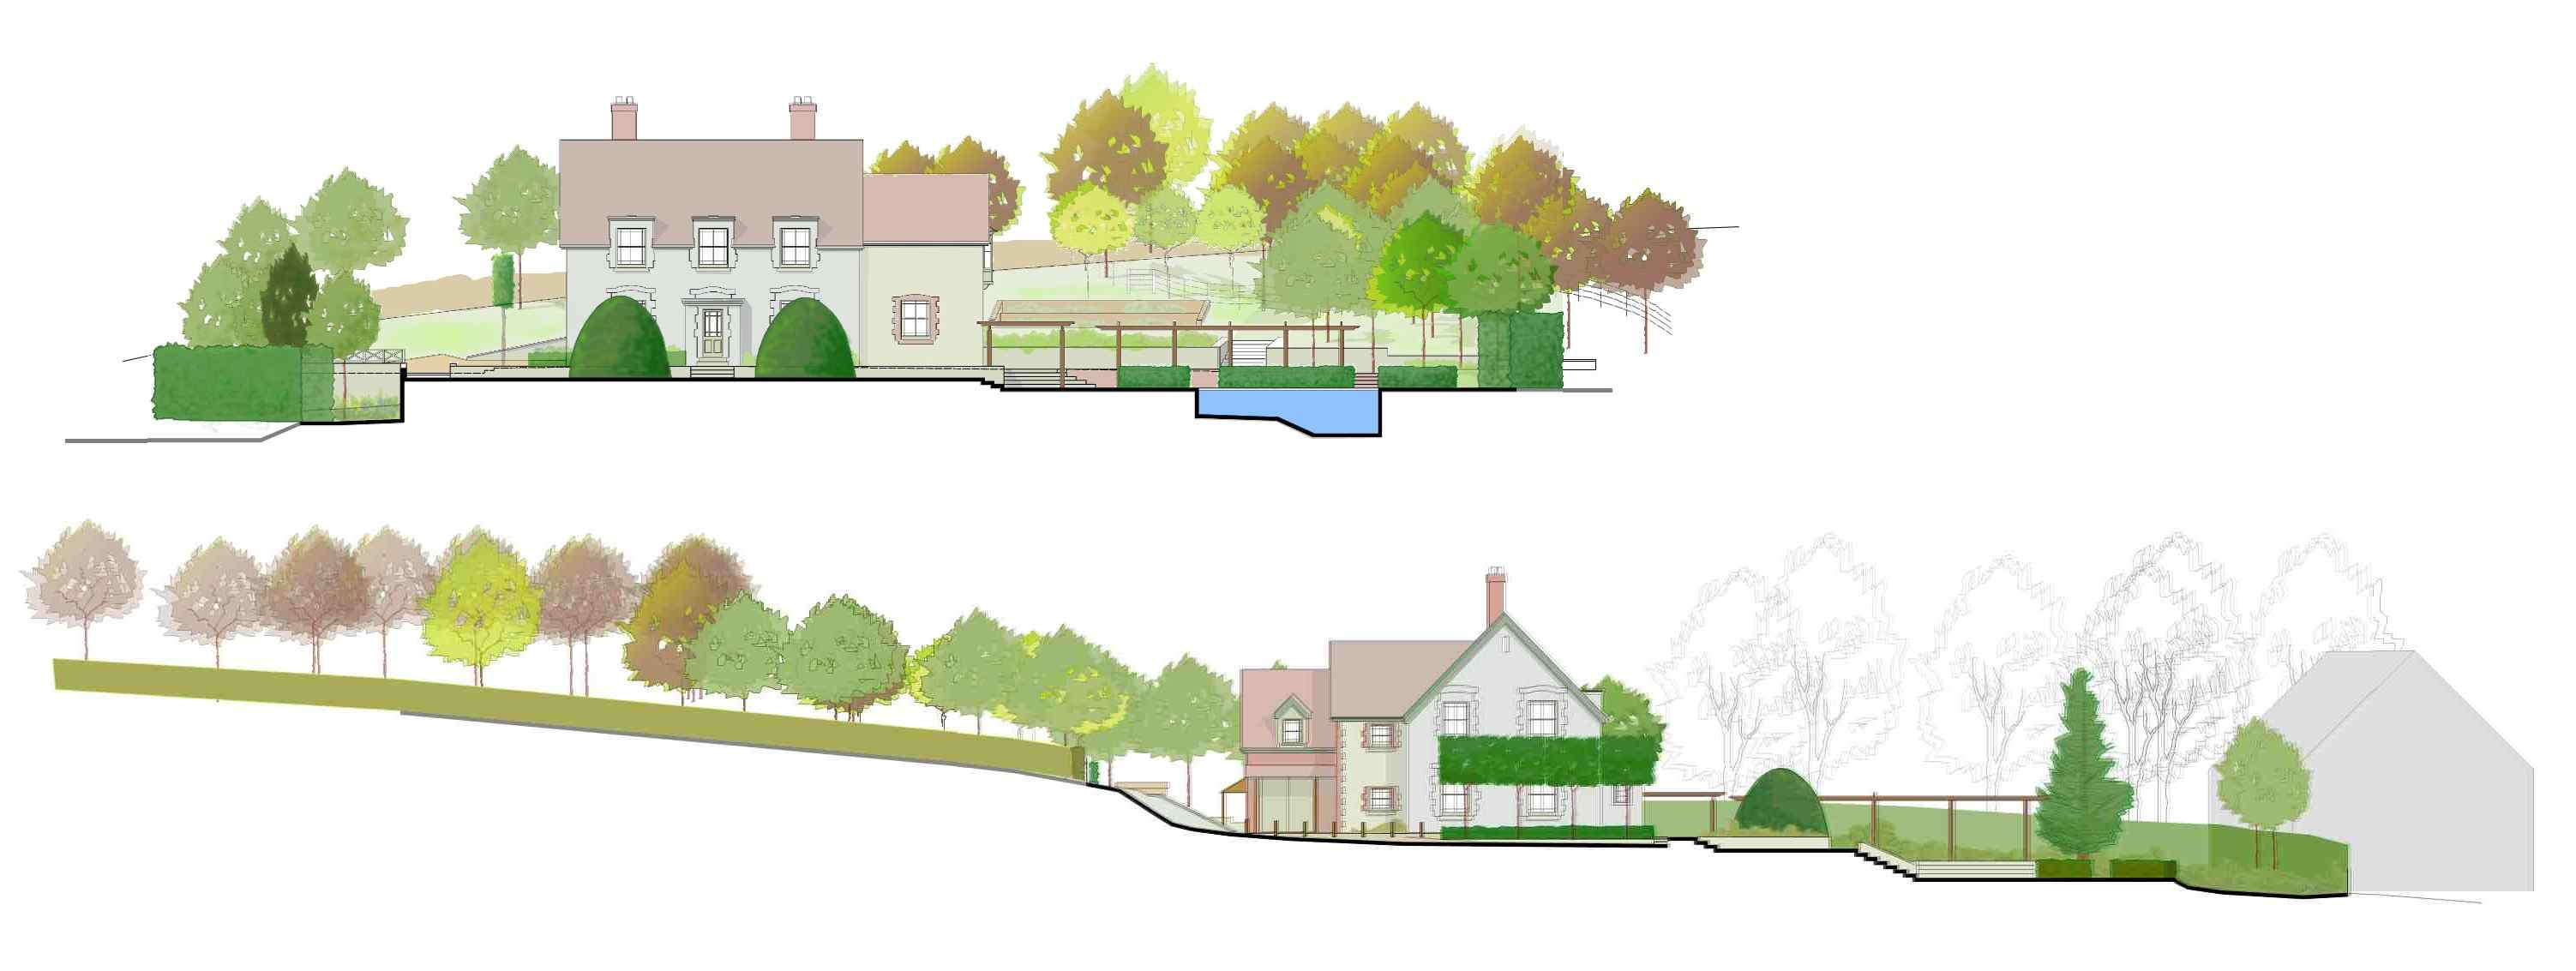 Views of a large country garden design near Shaftesbury Wiltshire